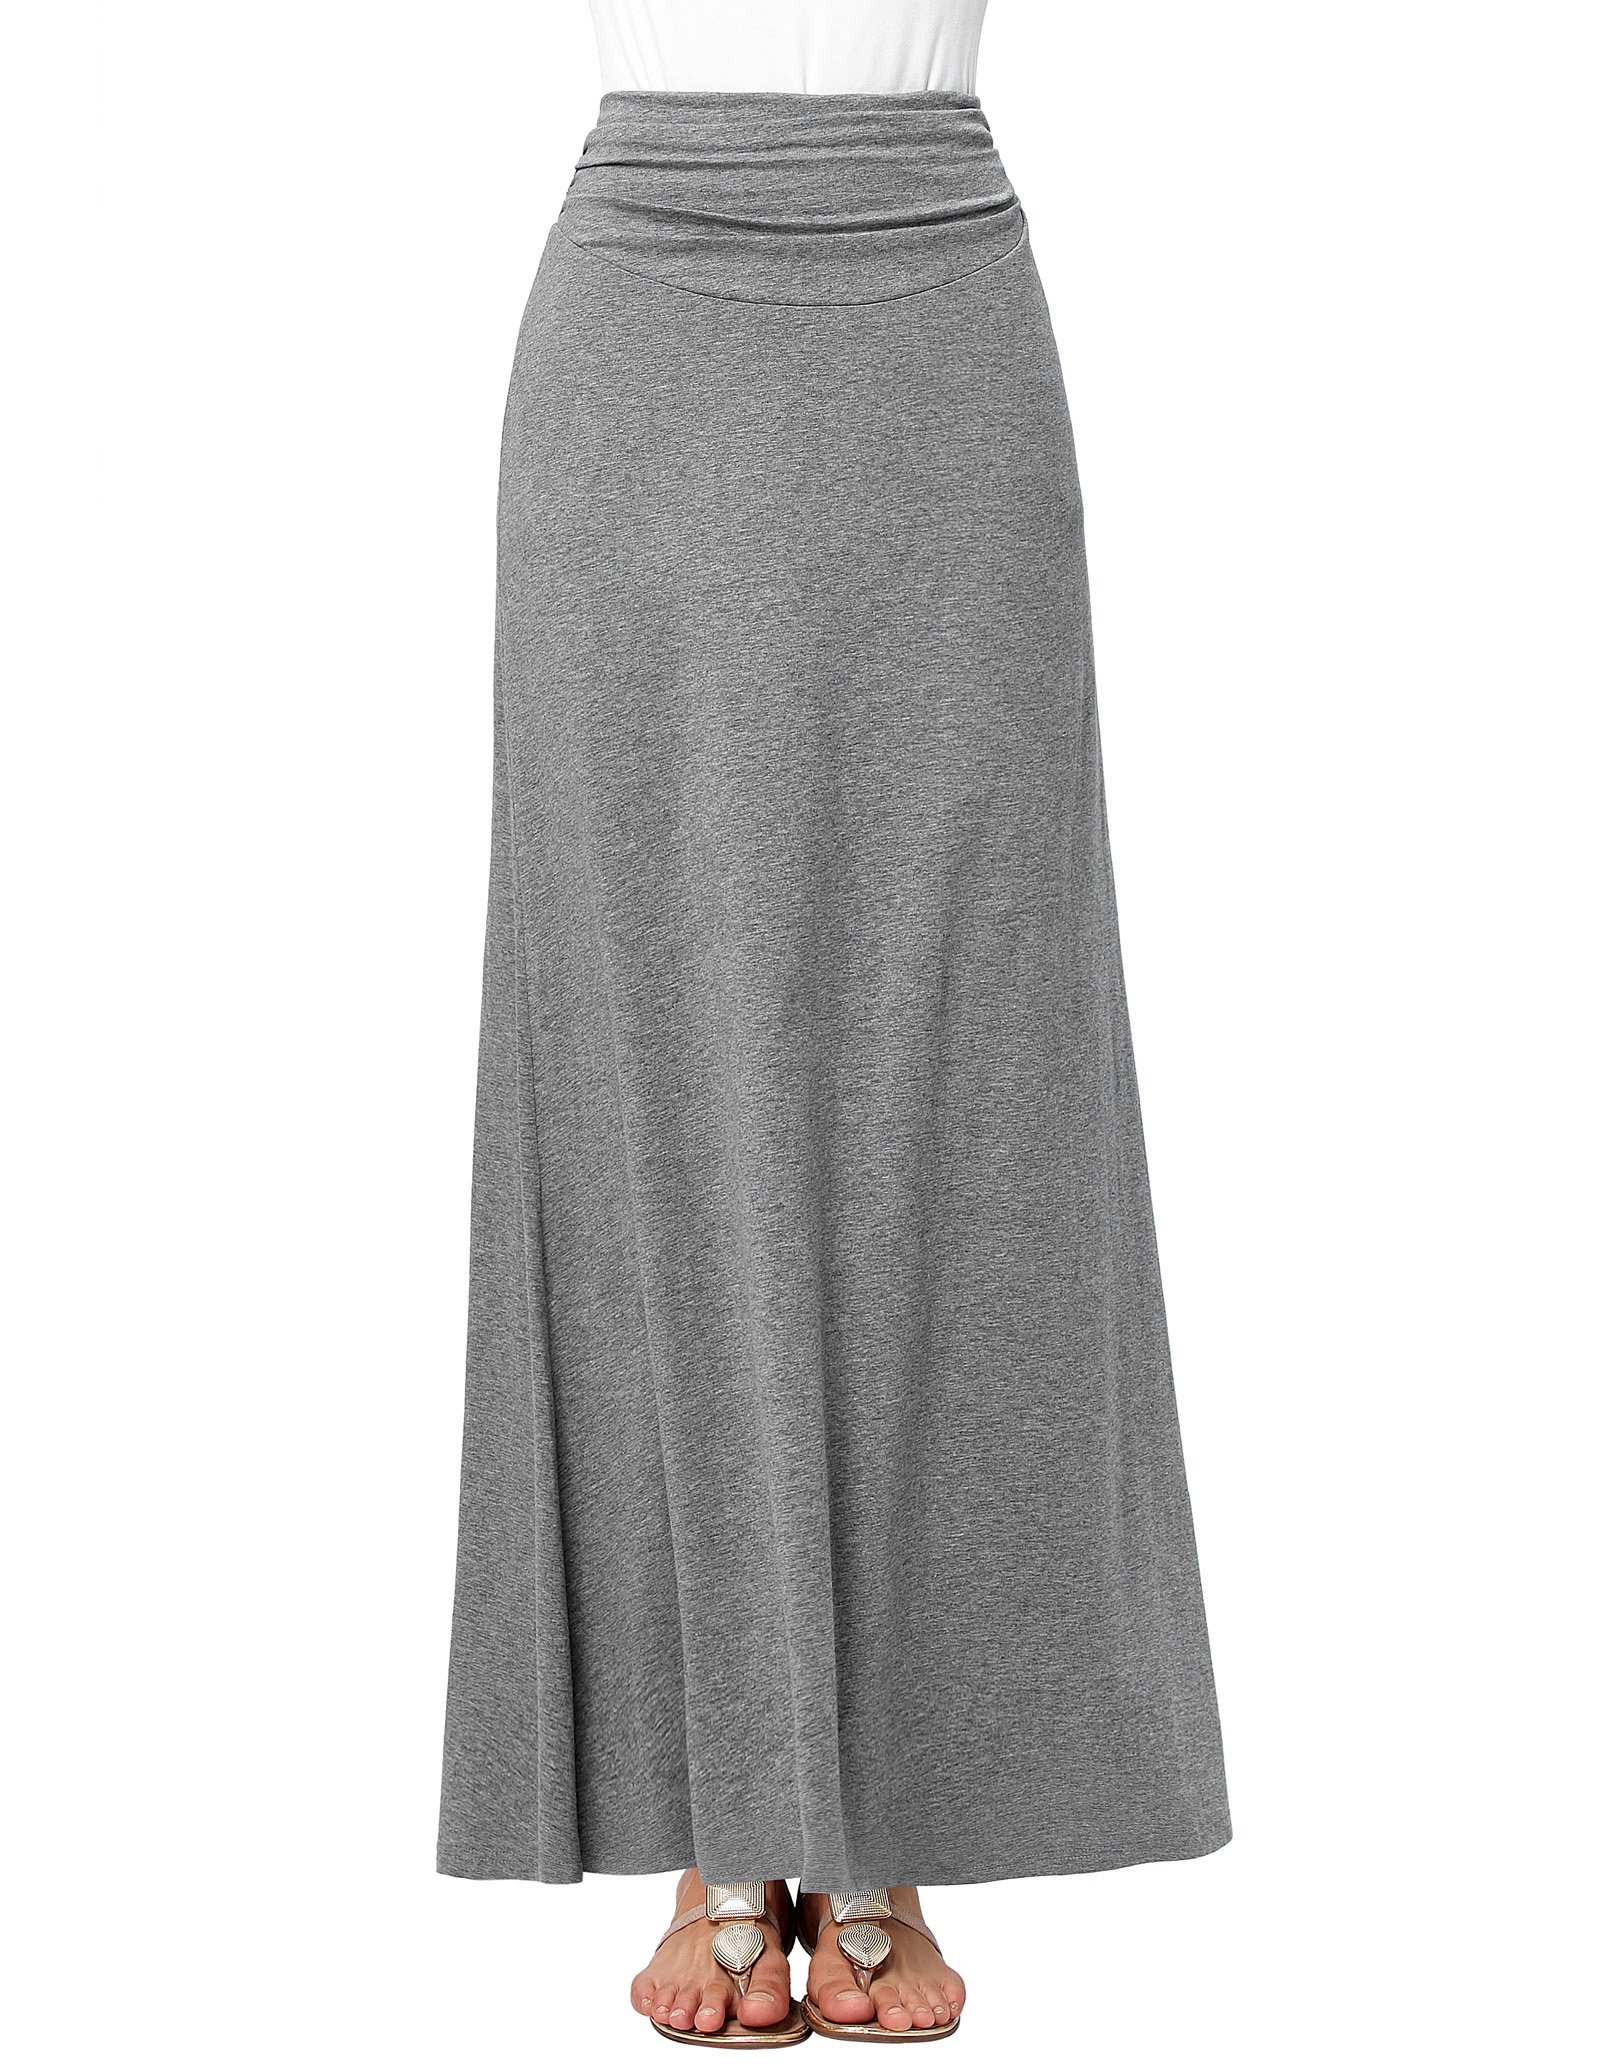 Lightweight Stretch Soft Long Maxi Skirt for Juniors Wear to School Size L KK289-2